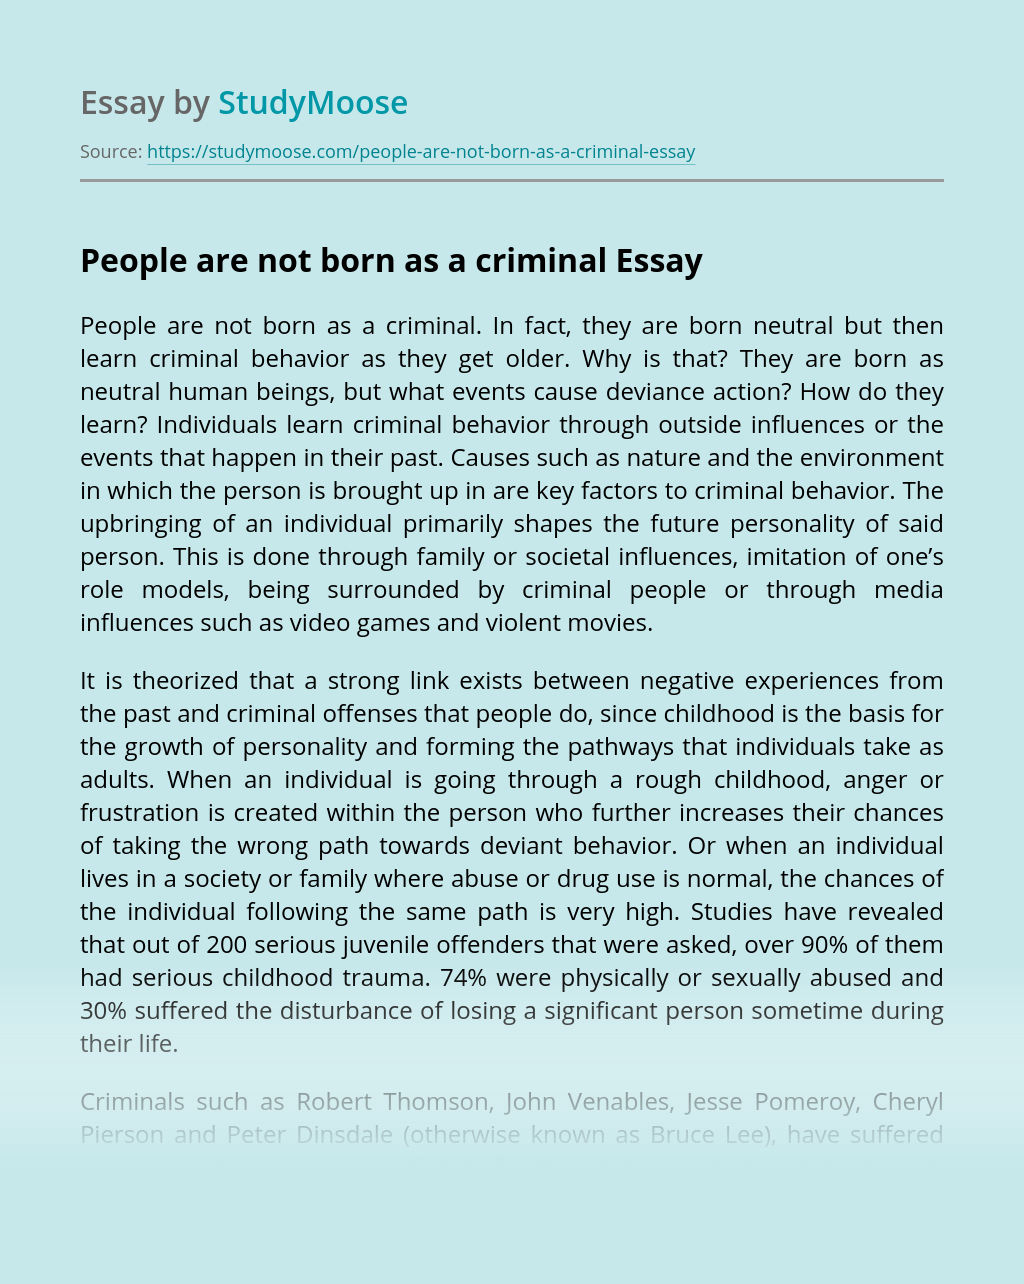 People are not born as a criminal